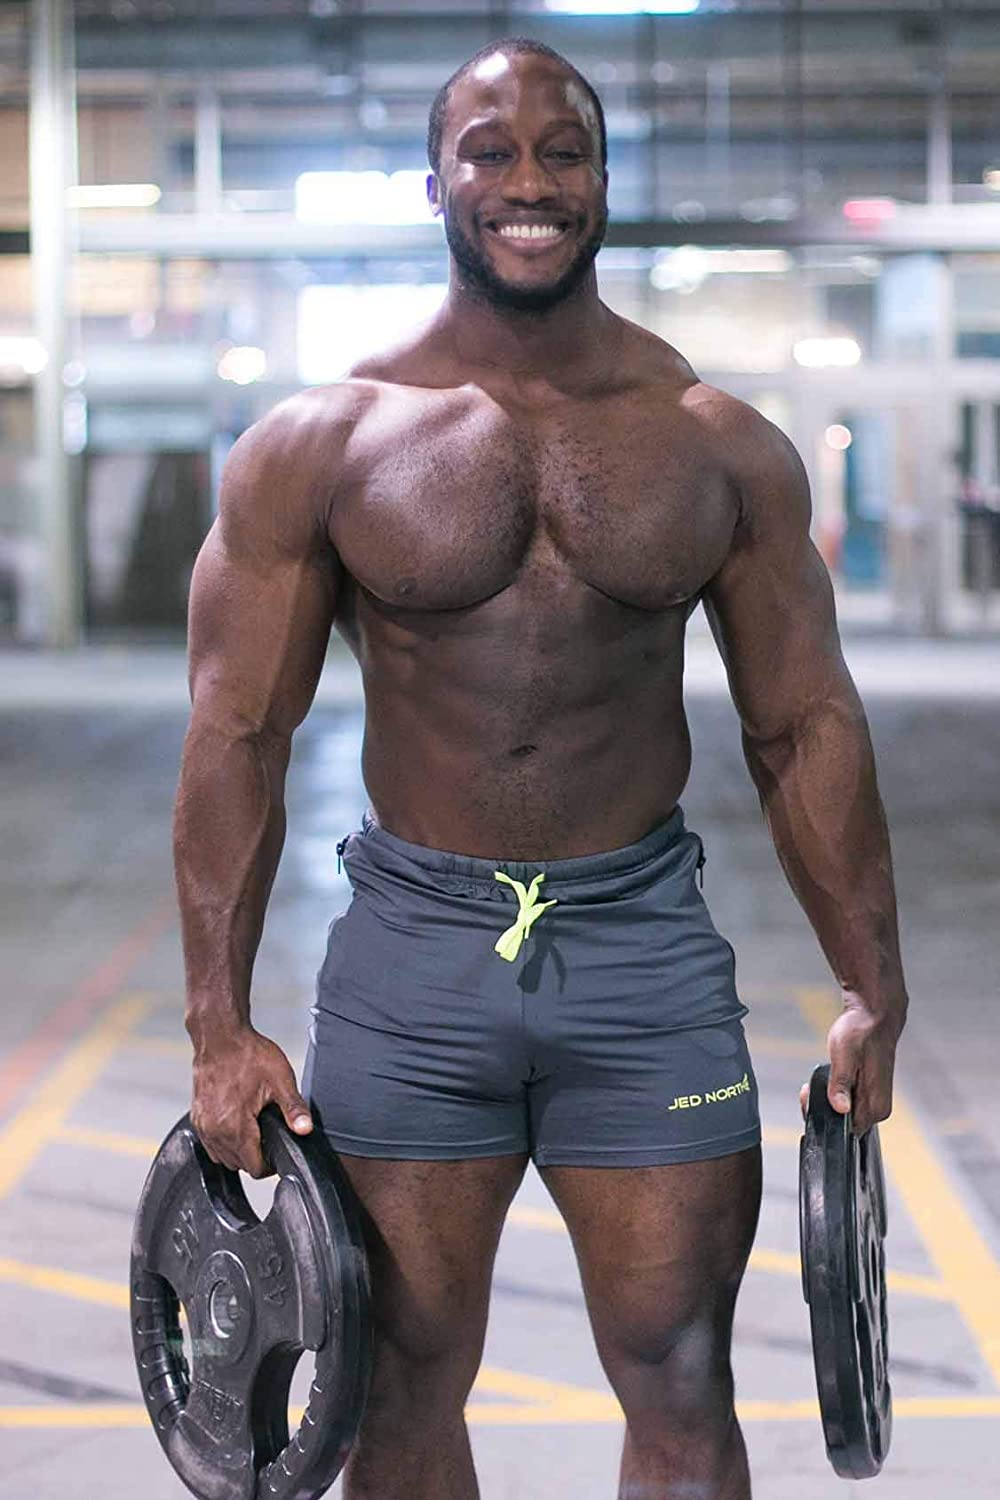 Jed North Mens Fitted Shorts Bodybuilding Workout Gym Running Tight Lifting Shorts